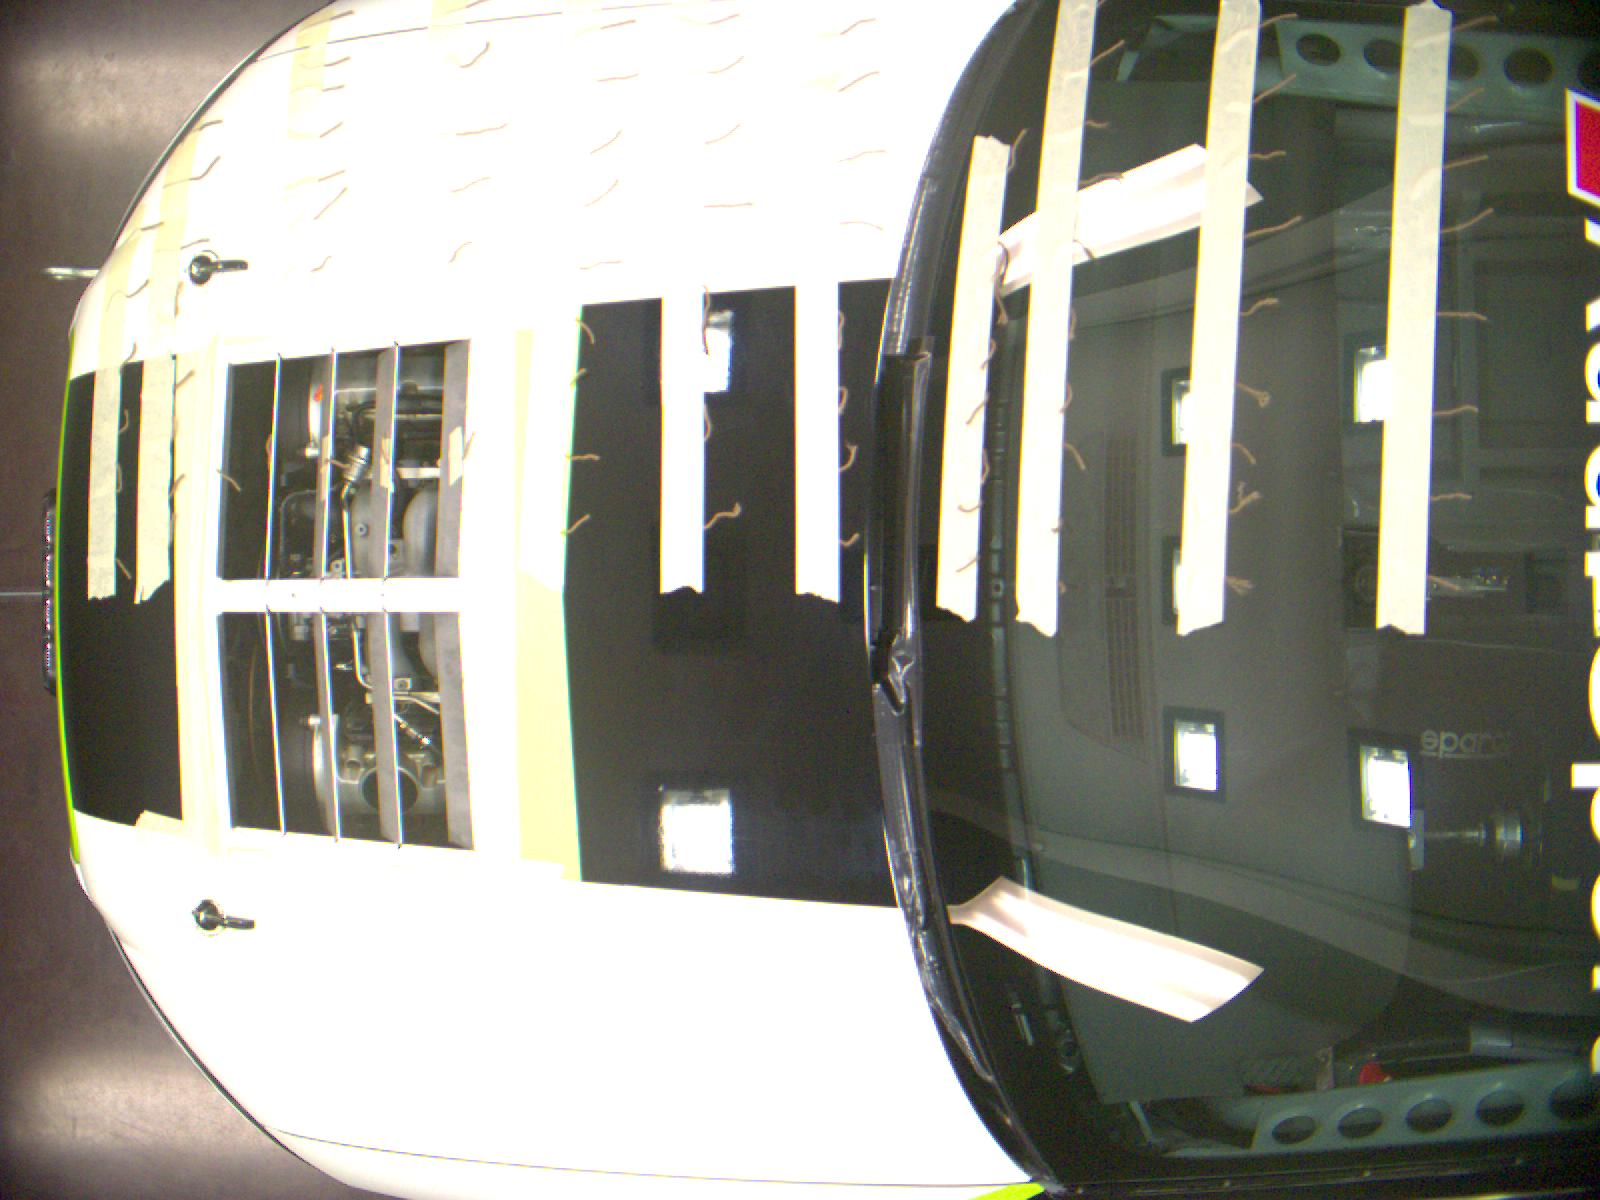 race-louvers-wind-tunnel-top-view-tuft.jpg